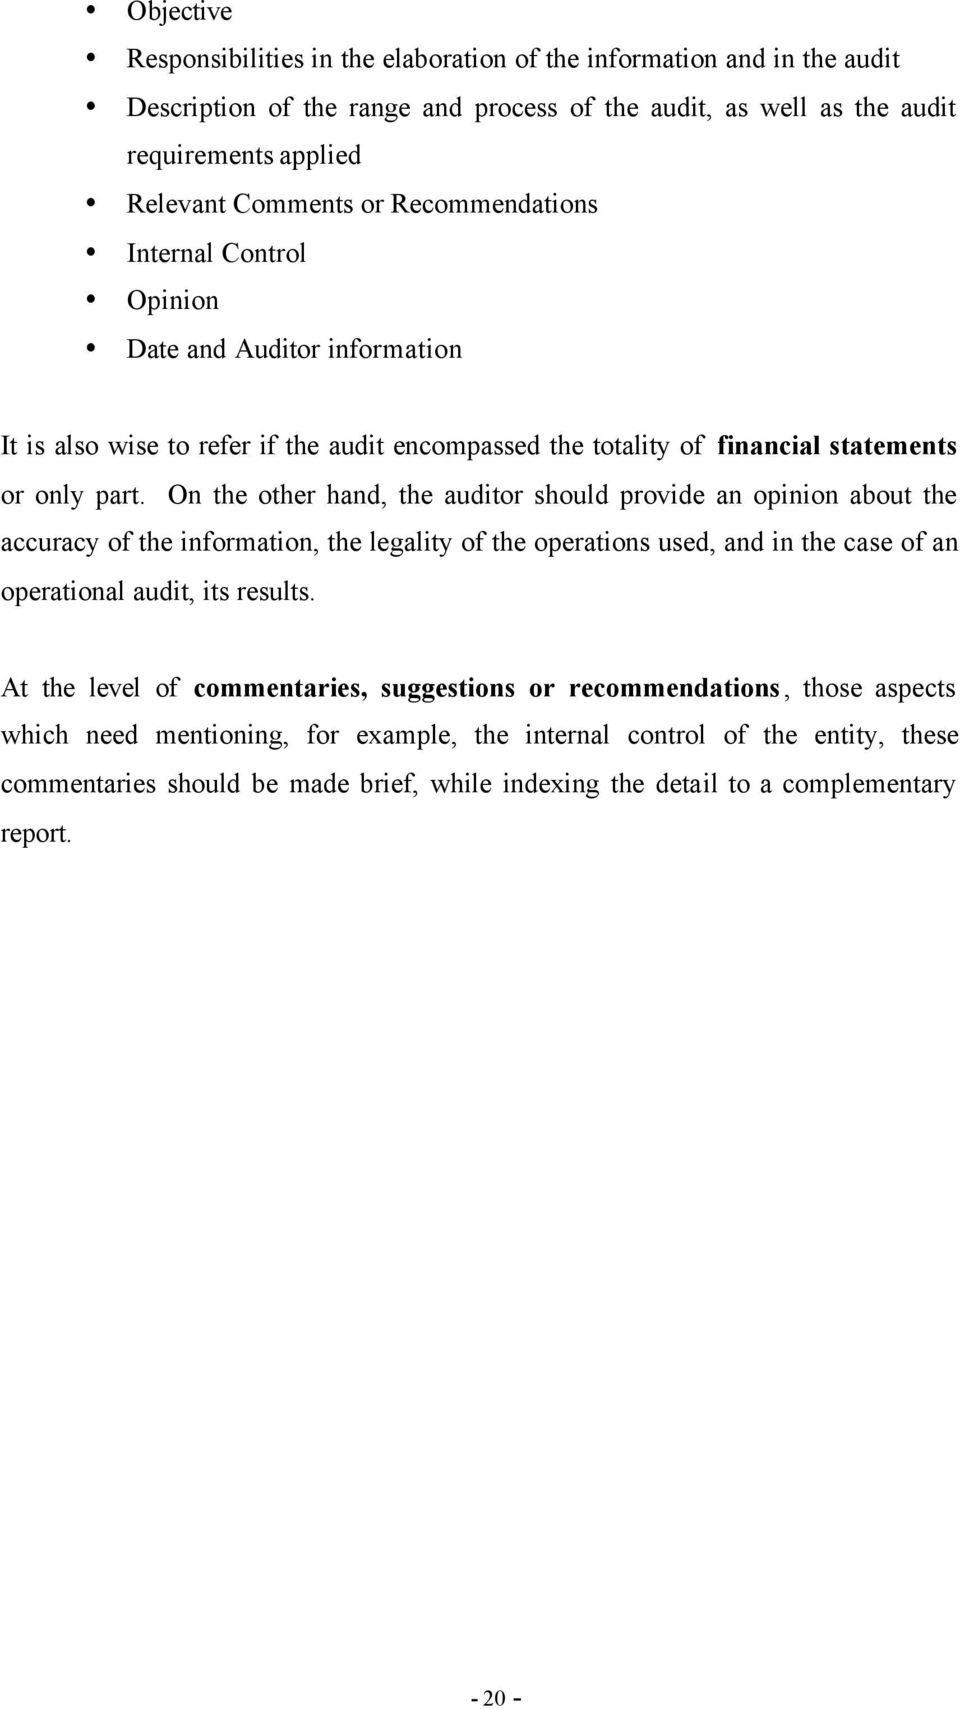 On the other hand, the auditor should provide an opinion about the accuracy of the information, the legality of the operations used, and in the case of an operational audit, its results.